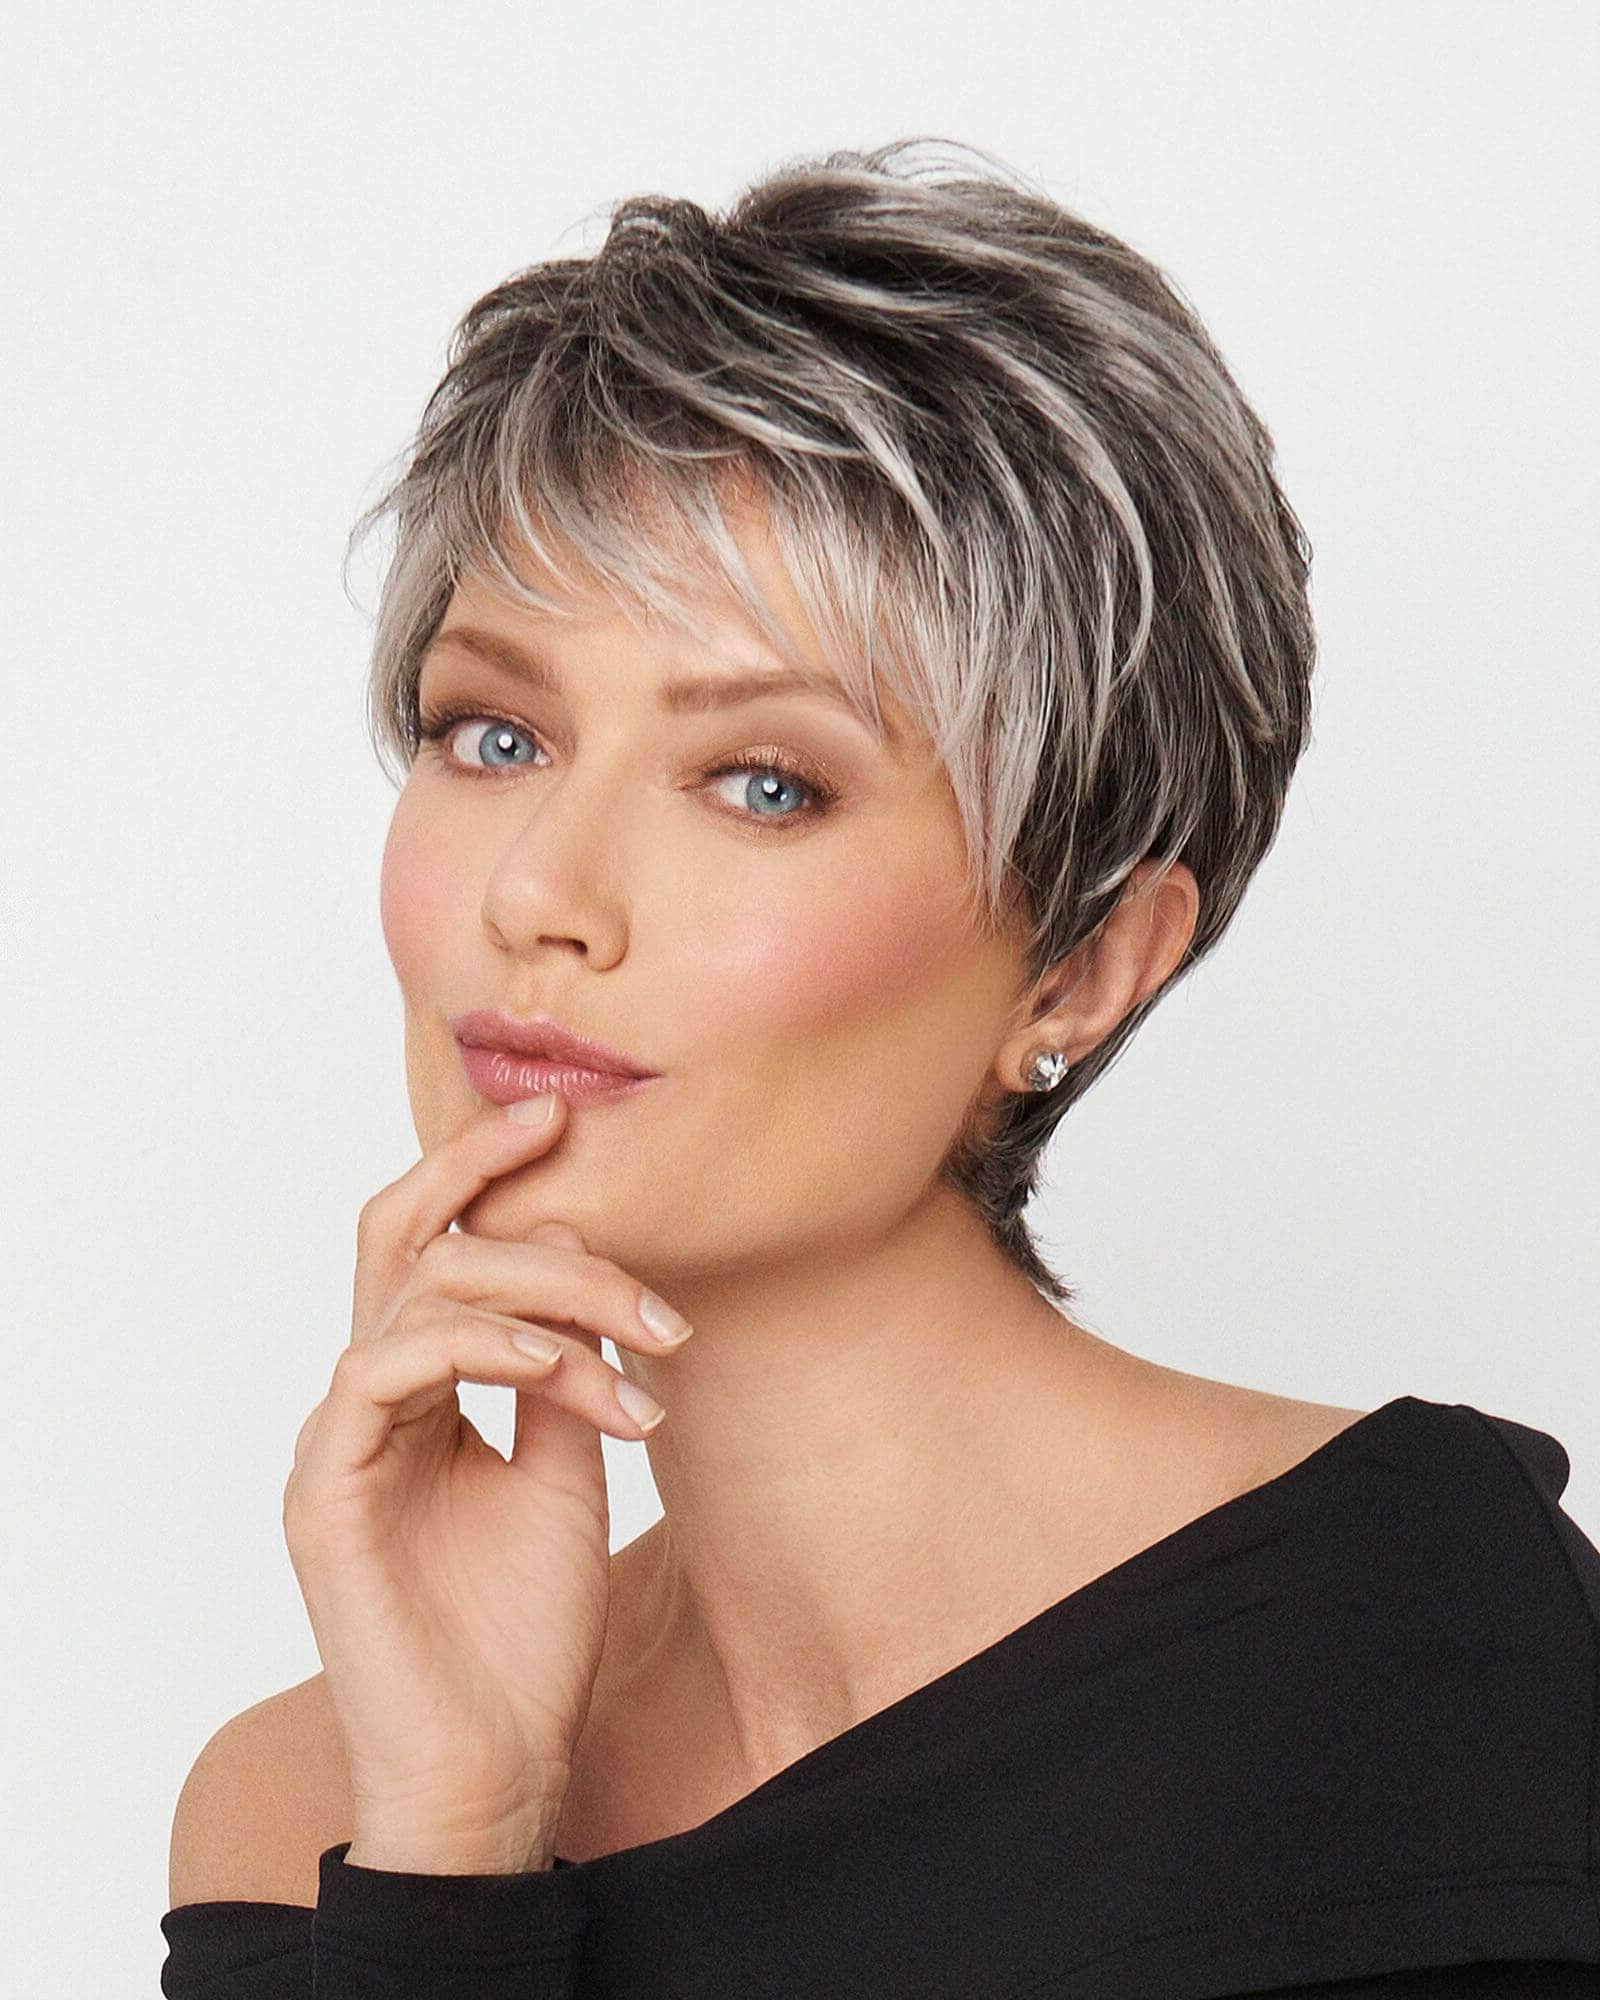 50 Pixie Haircuts You'll See Trending In 2019 Regarding Two Tone Feathered Pixie Haircuts (View 18 of 20)